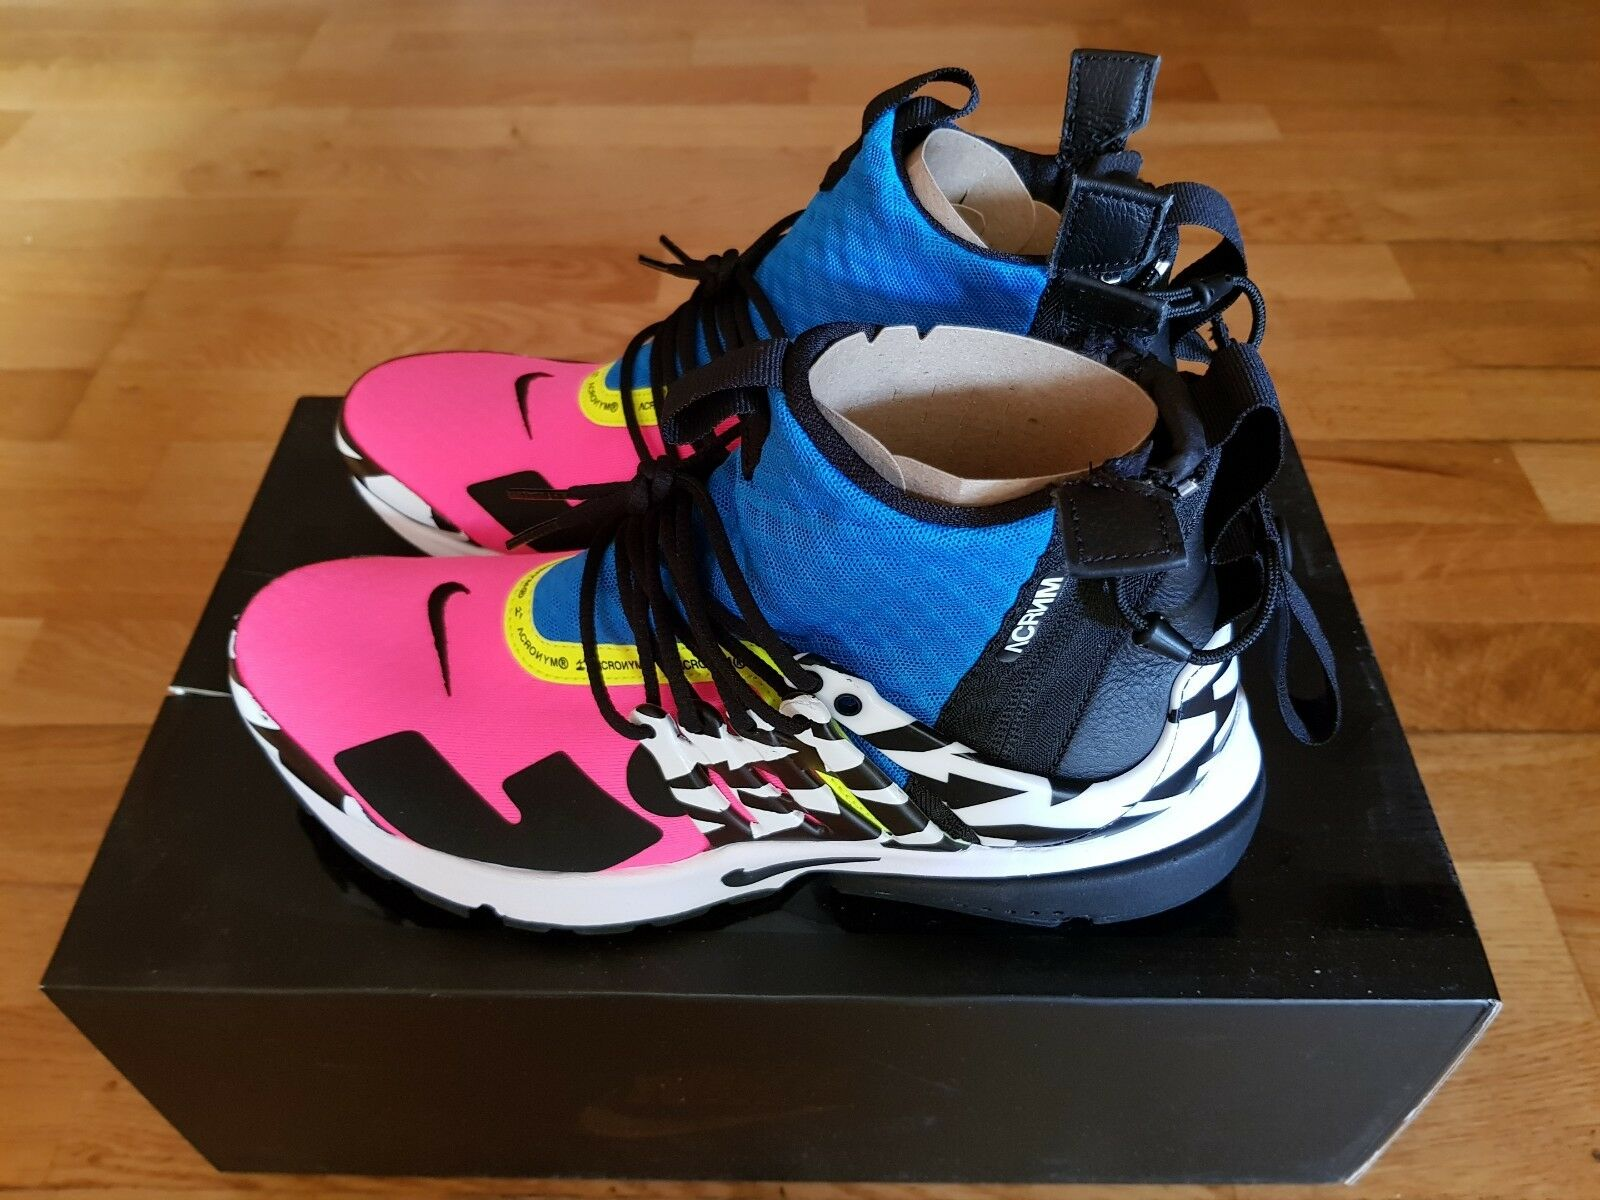 Nike Air Presto x Acronym Mid Racer Pink bluee, US 8, Brand New DS